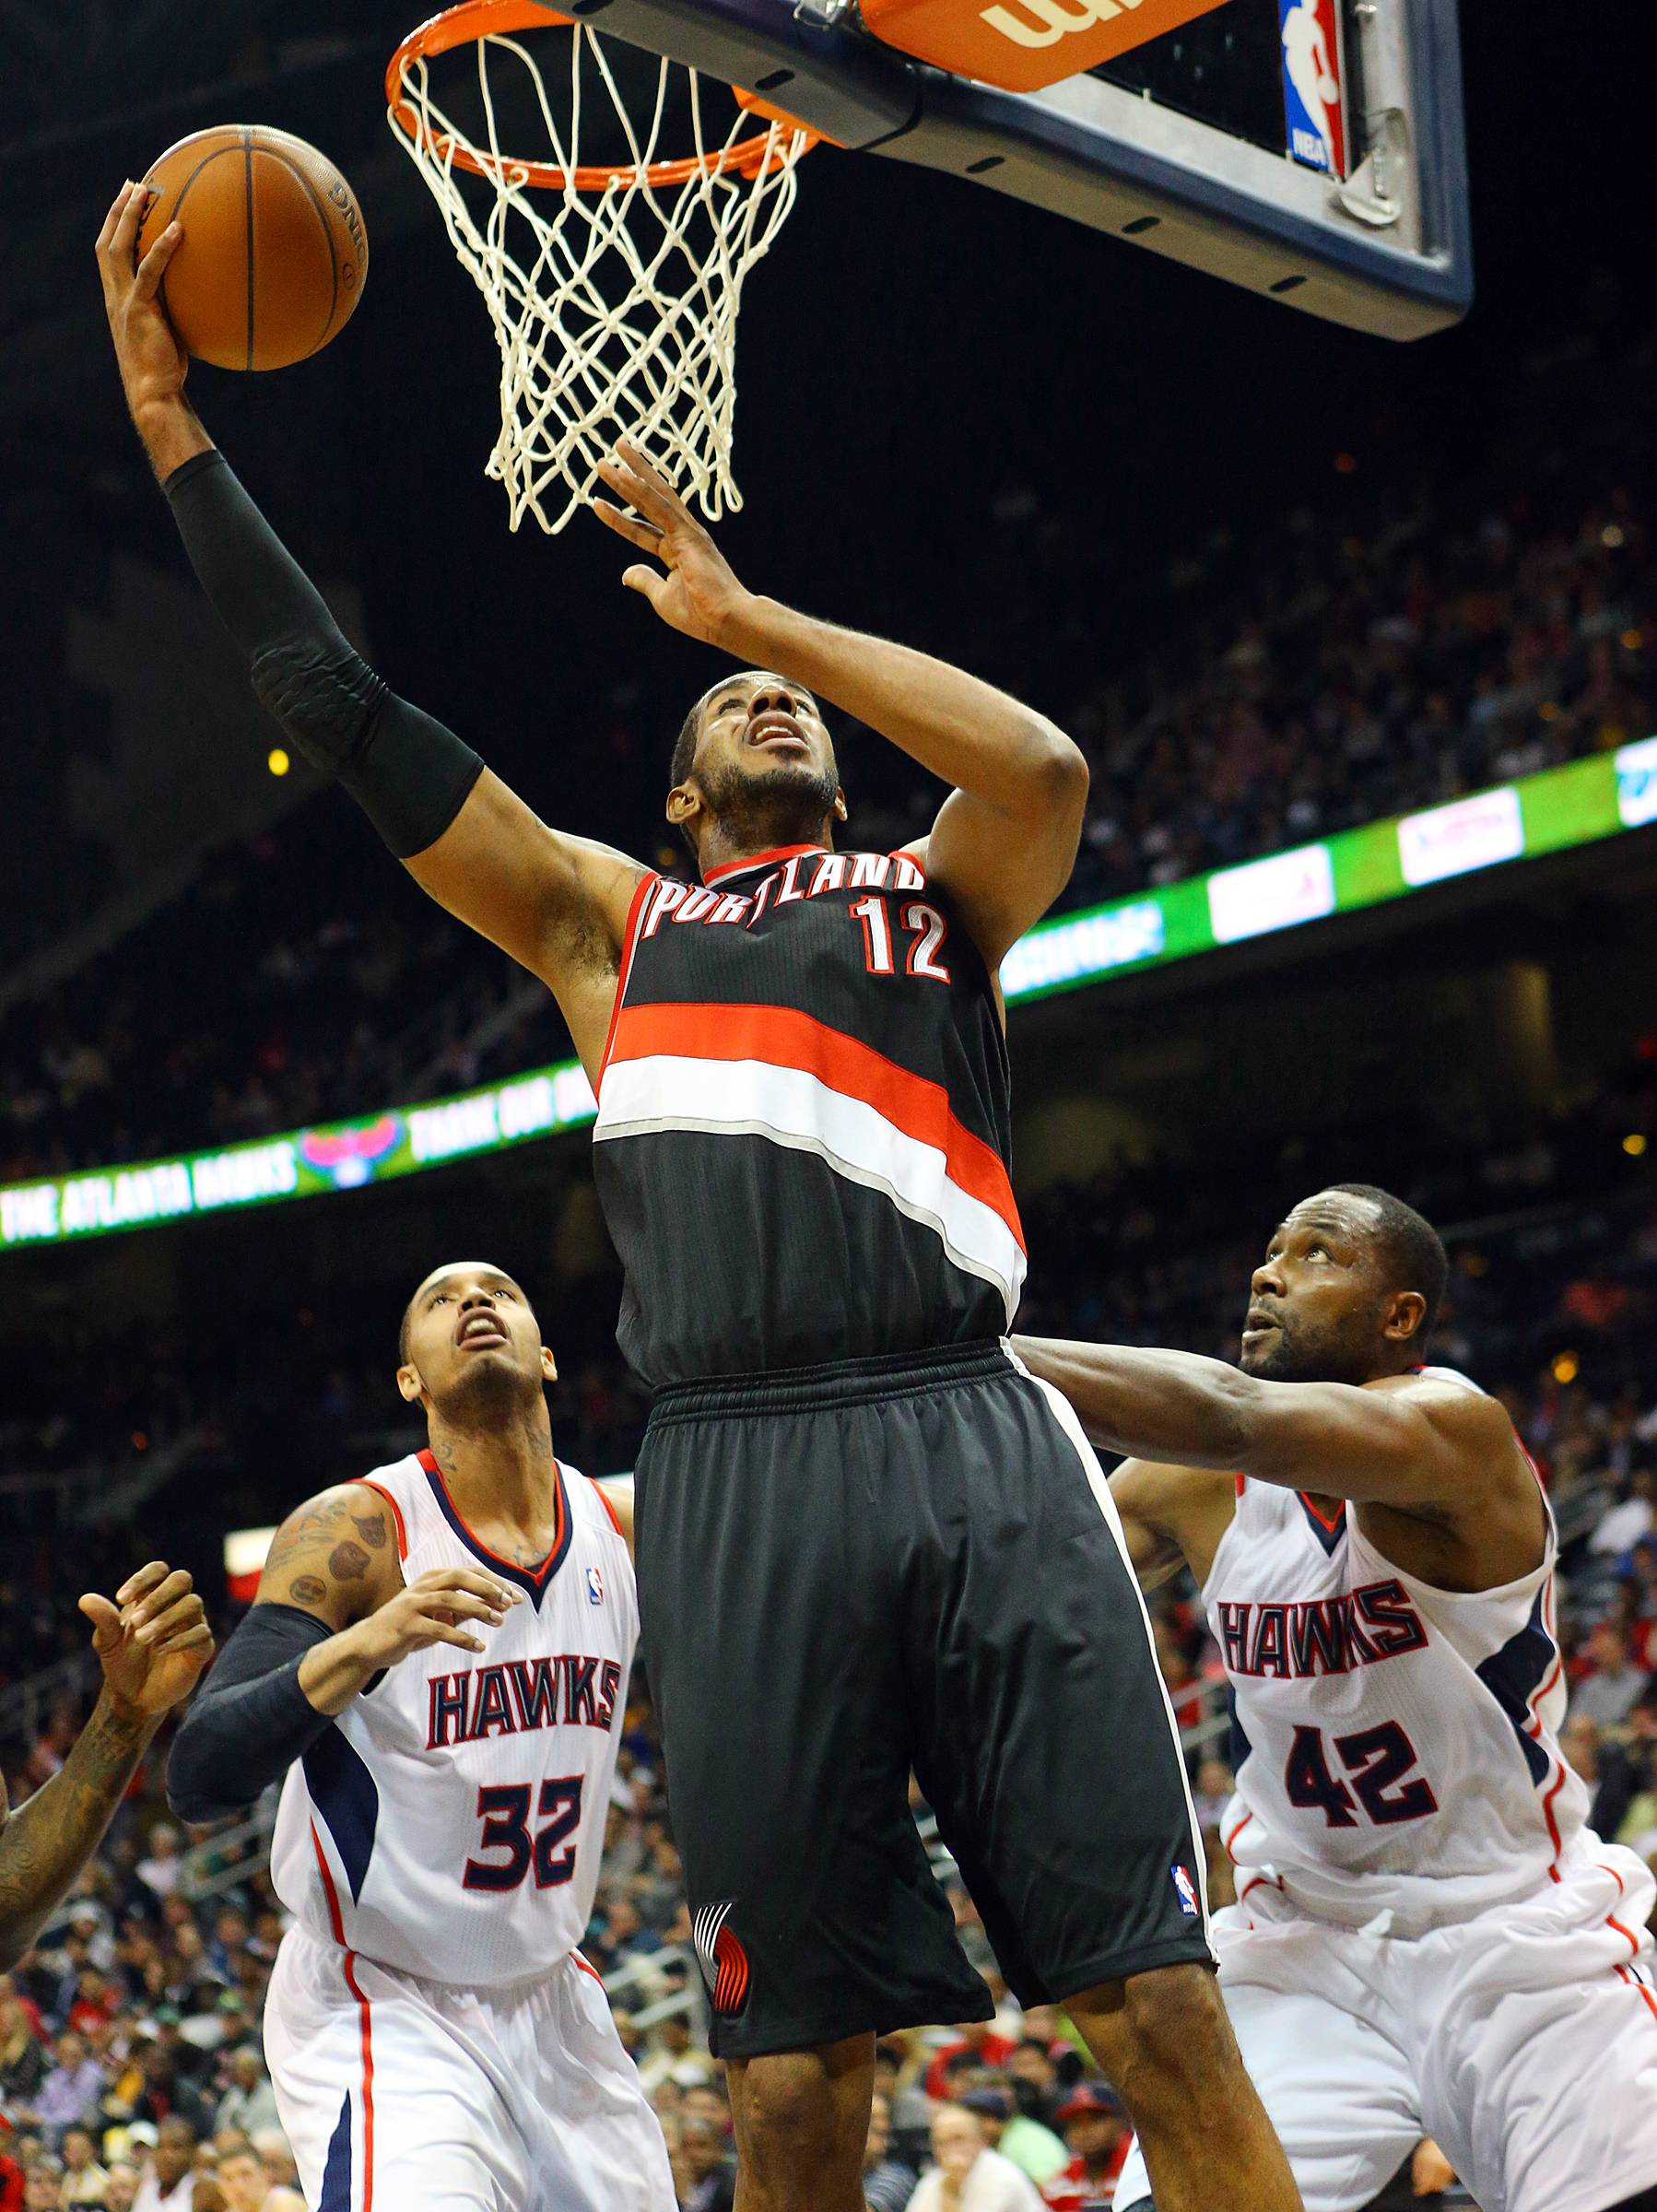 Portland's LaMarcus Aldridge gets the rebound and lays it up for 2 of his team-high 25 points Thursday night at Atlanta.